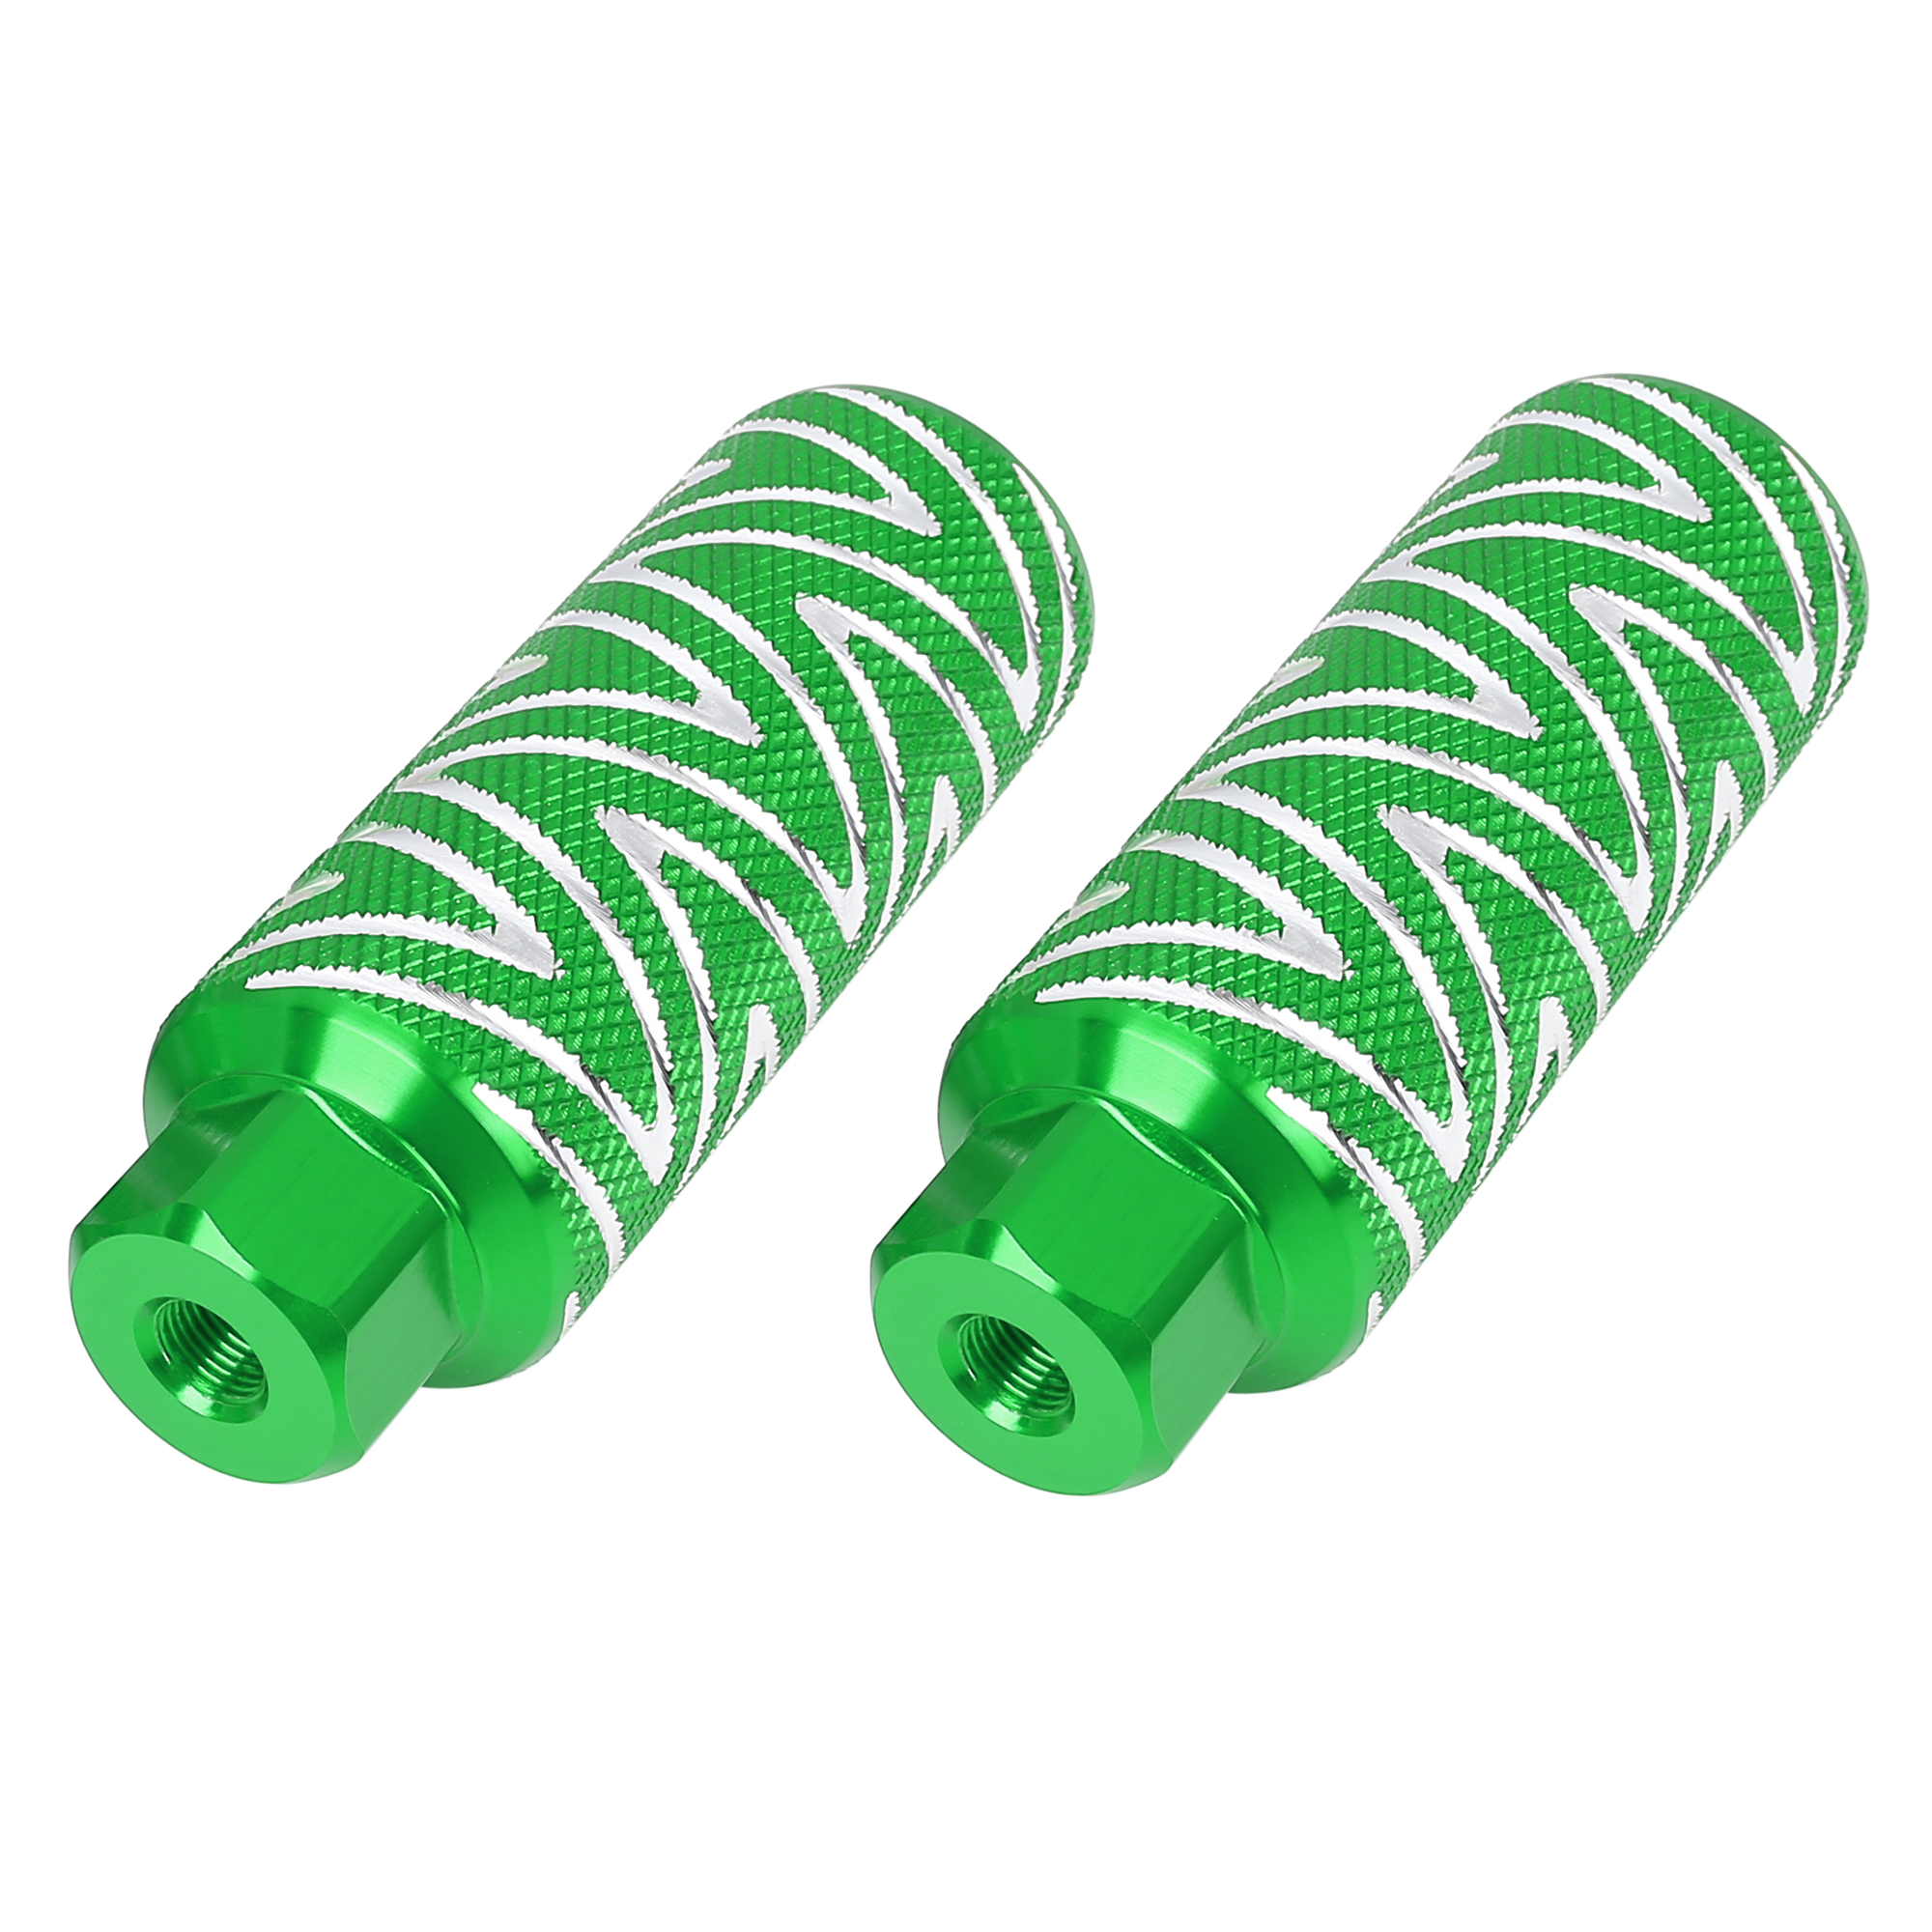 Pair Aluminum Alloy Wave Stripes Bike Foot Pegs Fit 3/8 Inch 110x38mm Green